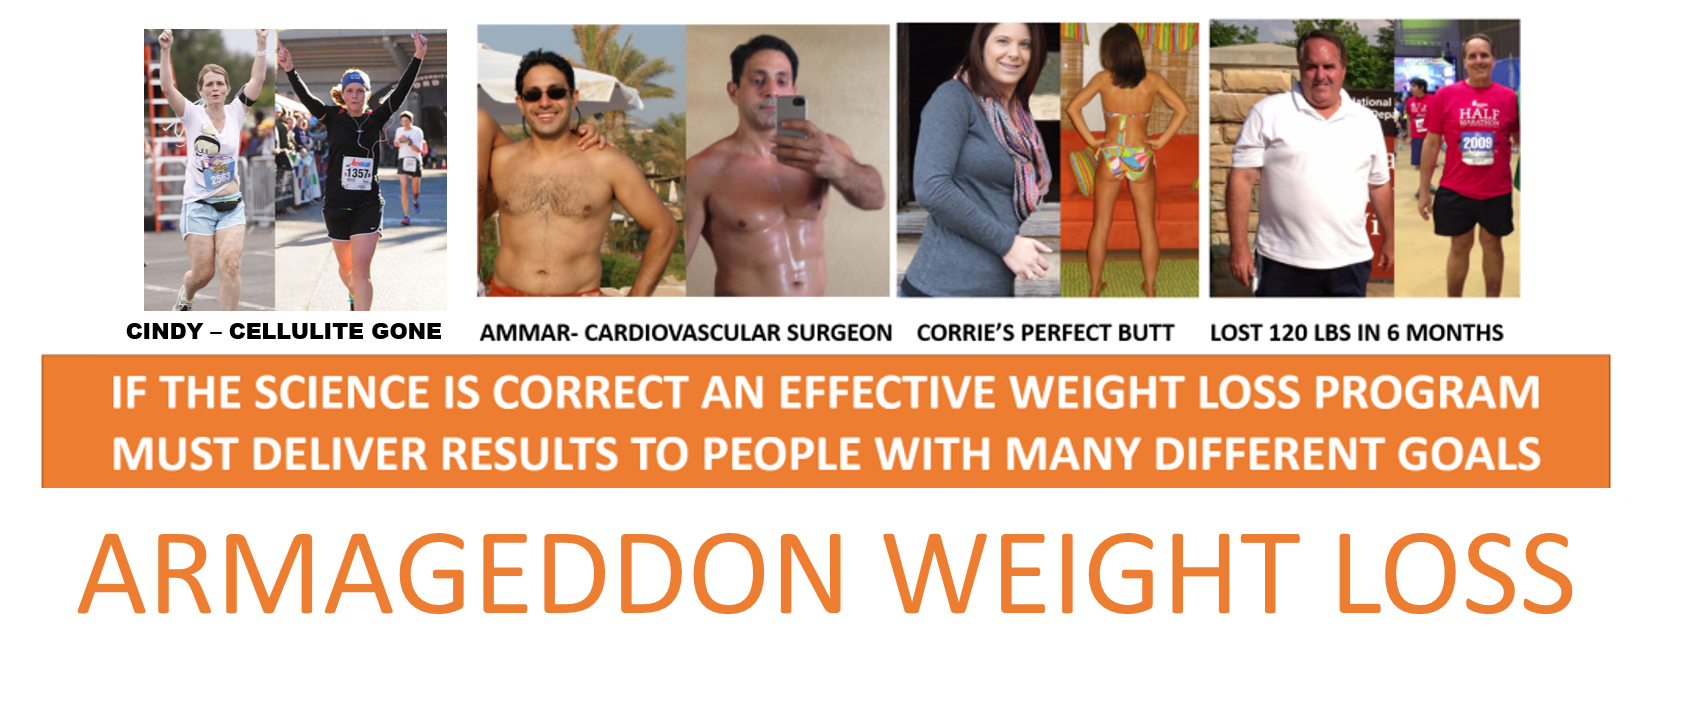 Dr jarrous cardiovascular surgeon best weight loss program How to lose weight on slimming world